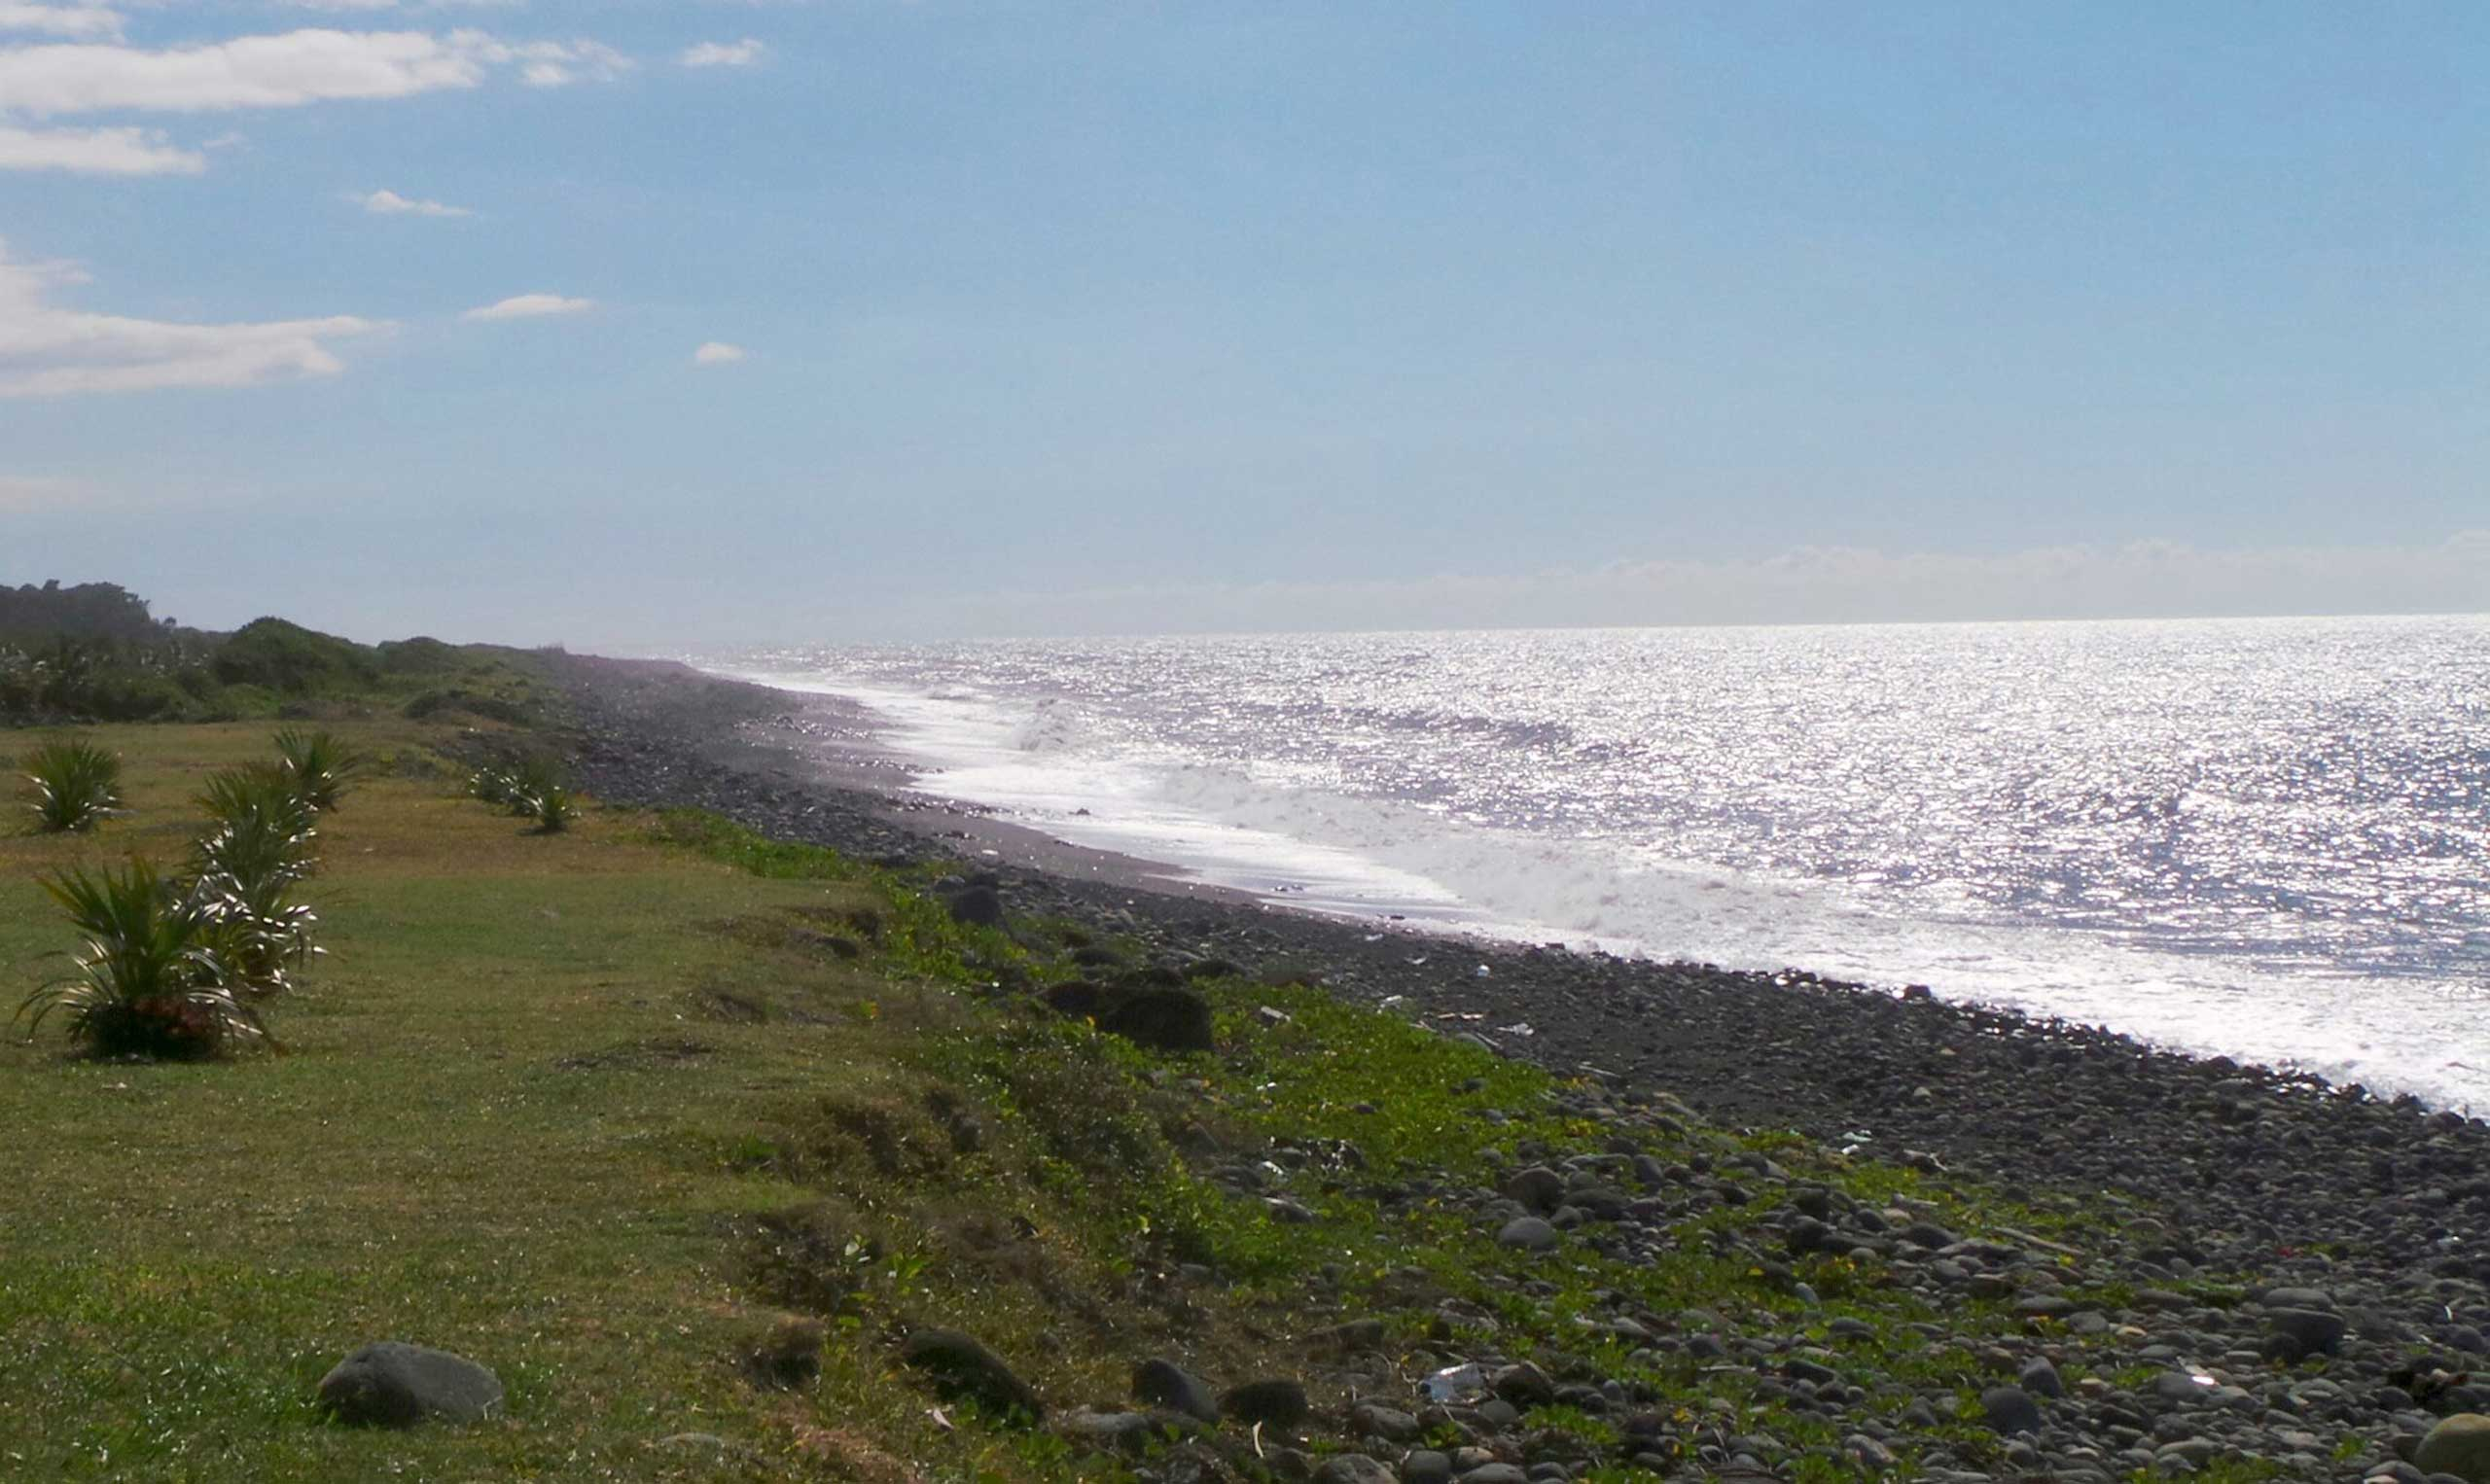 General view of the beach where a large piece of plane debris was found on Wednesday in Saint-Andre, on the French Indian Ocean island of La Reunion, on July 30, 2015.